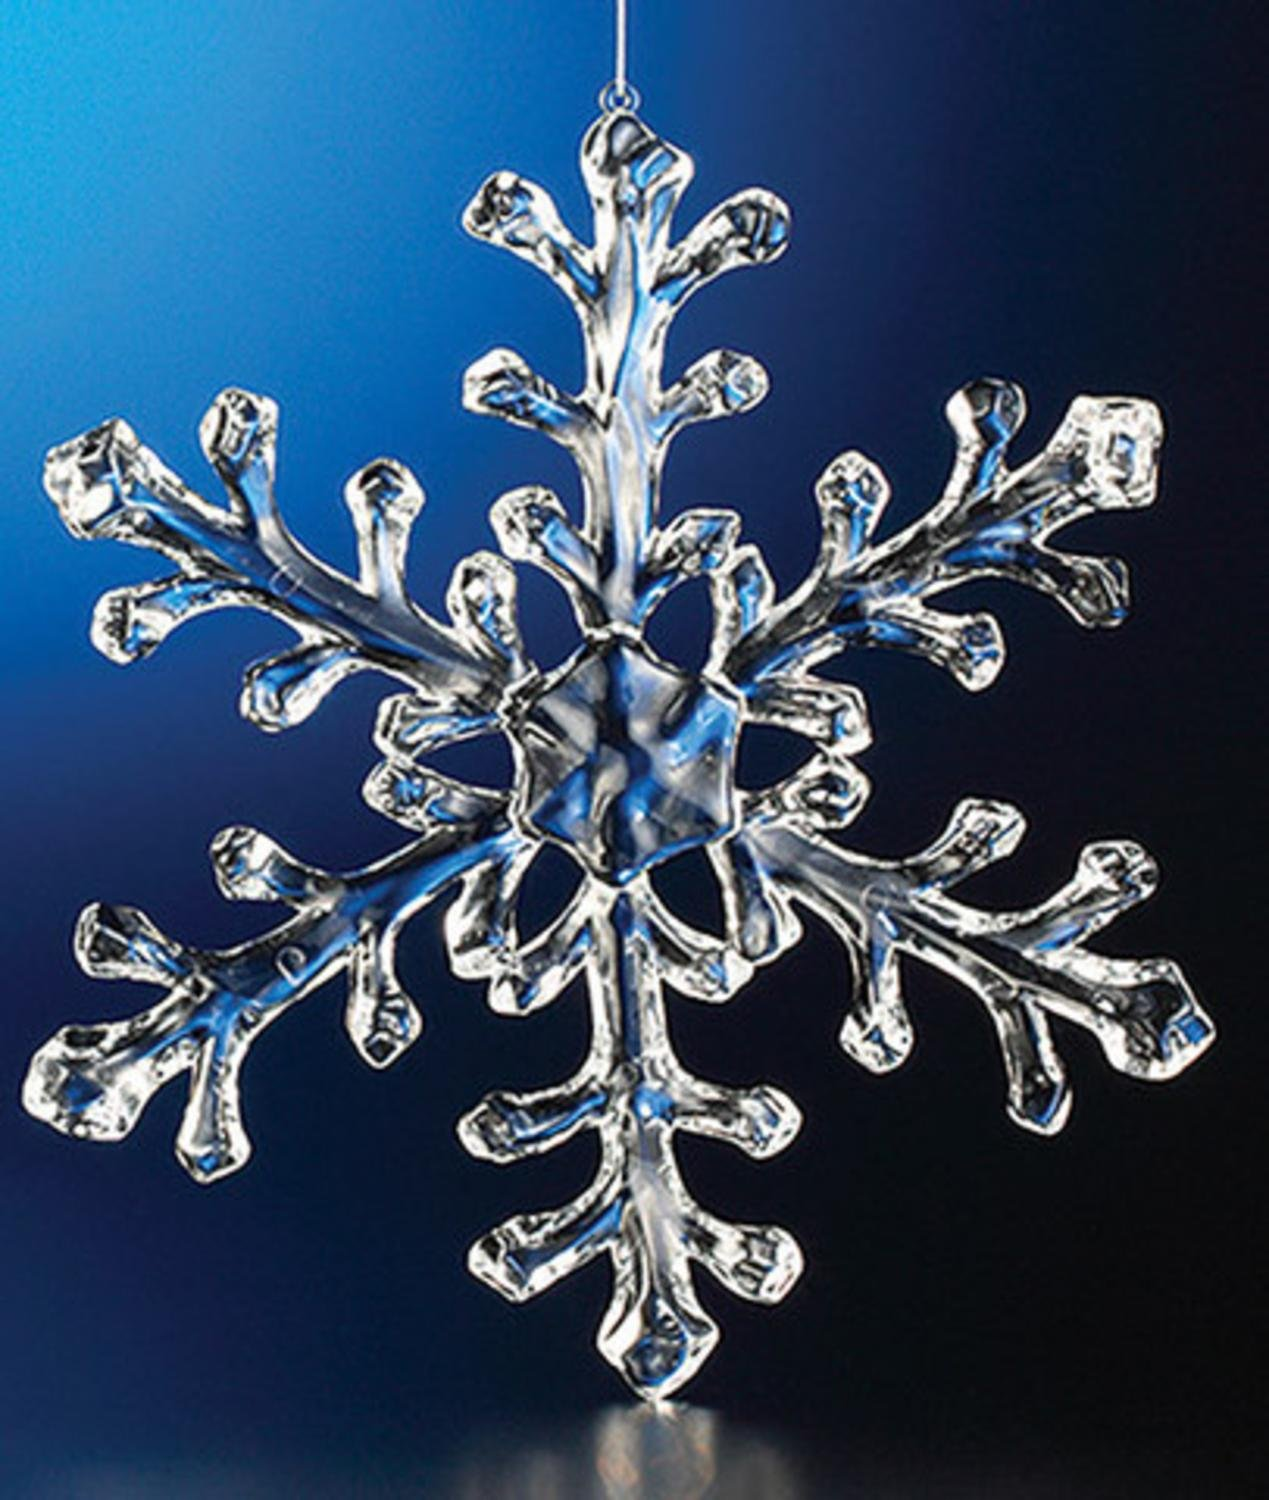 Club Pack of 12 Icy Crystal Decorative Large Christmas Snowflake Ornaments 9.5''